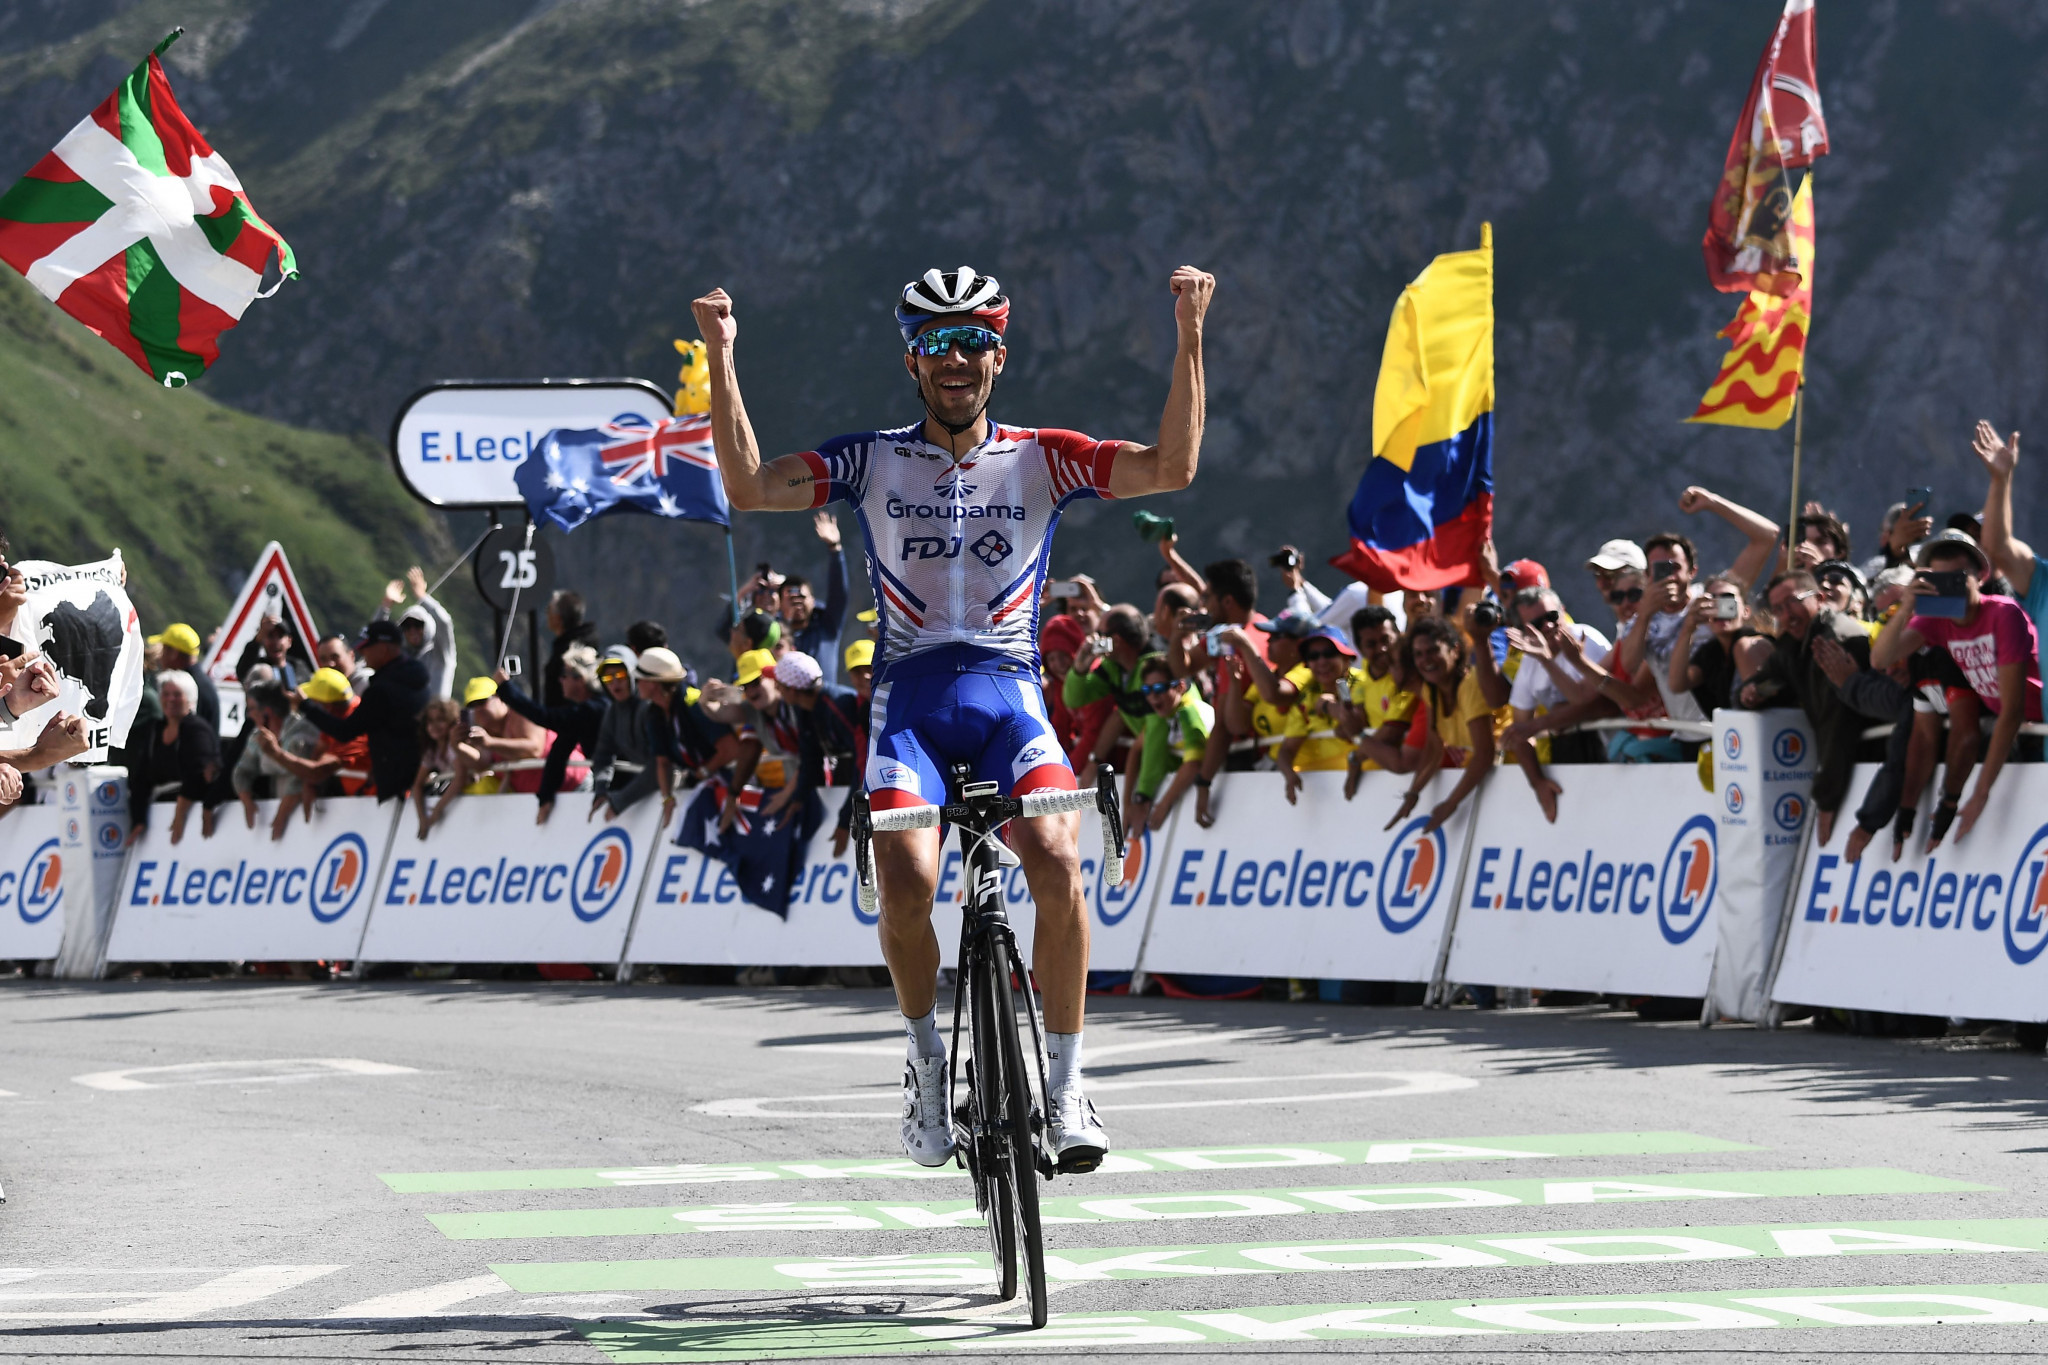 Thibaut Pinot produced a superb display to win stage 14 ©Getty Images